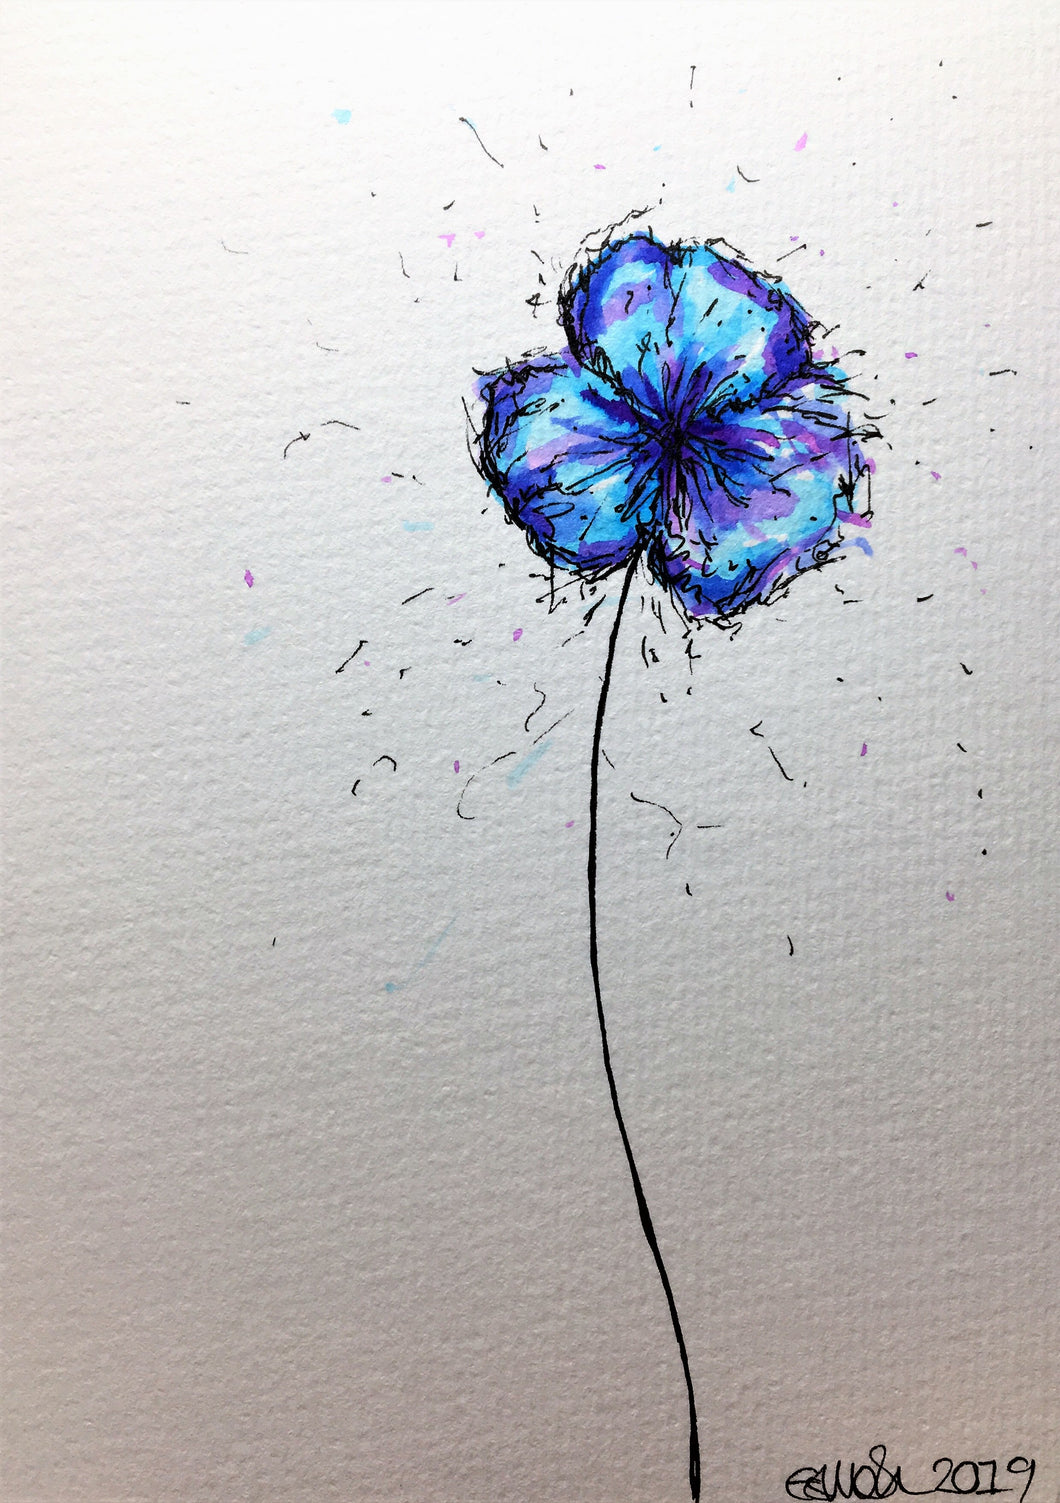 Hand-painted greeting card - Blue, turquoise and purple Pansy flower design - eDgE dEsiGn London